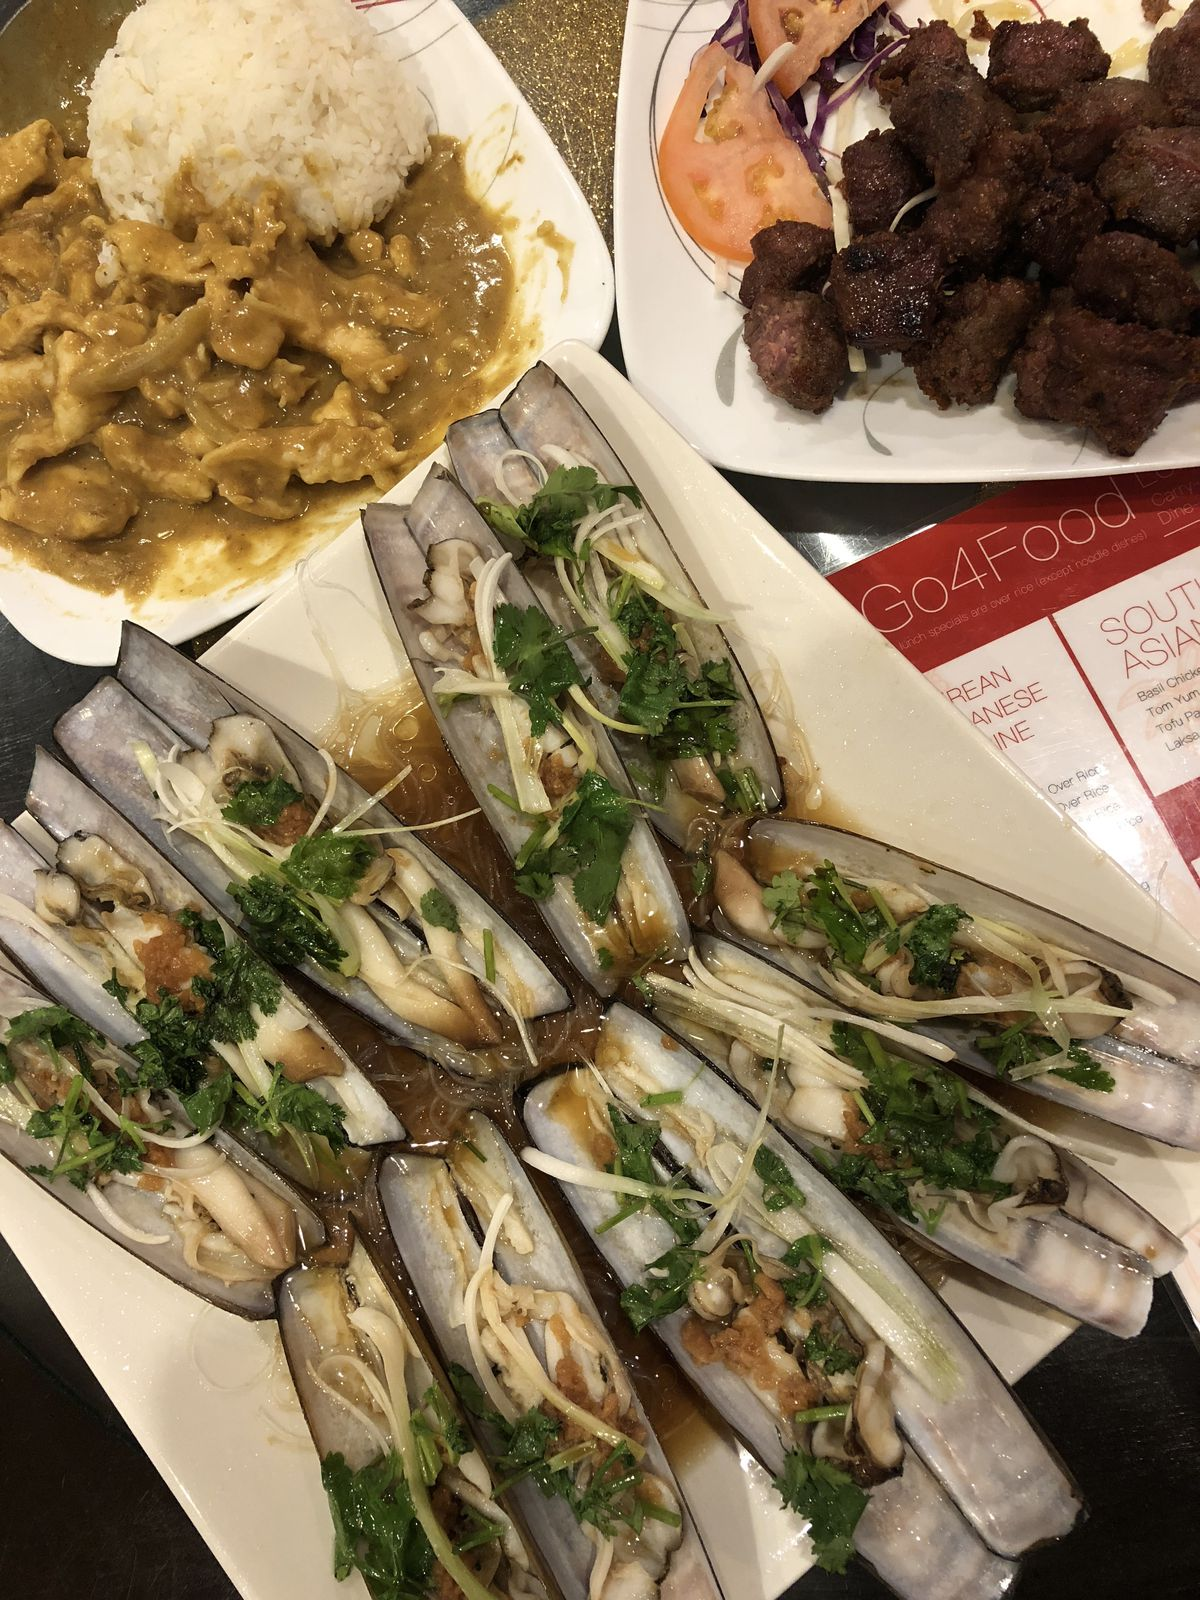 Razor Clams with vermicelli noodles, chicken curry, French fried beef at Go 4 Food in Chinatown.   Ji Suk Yi / Sun-Times